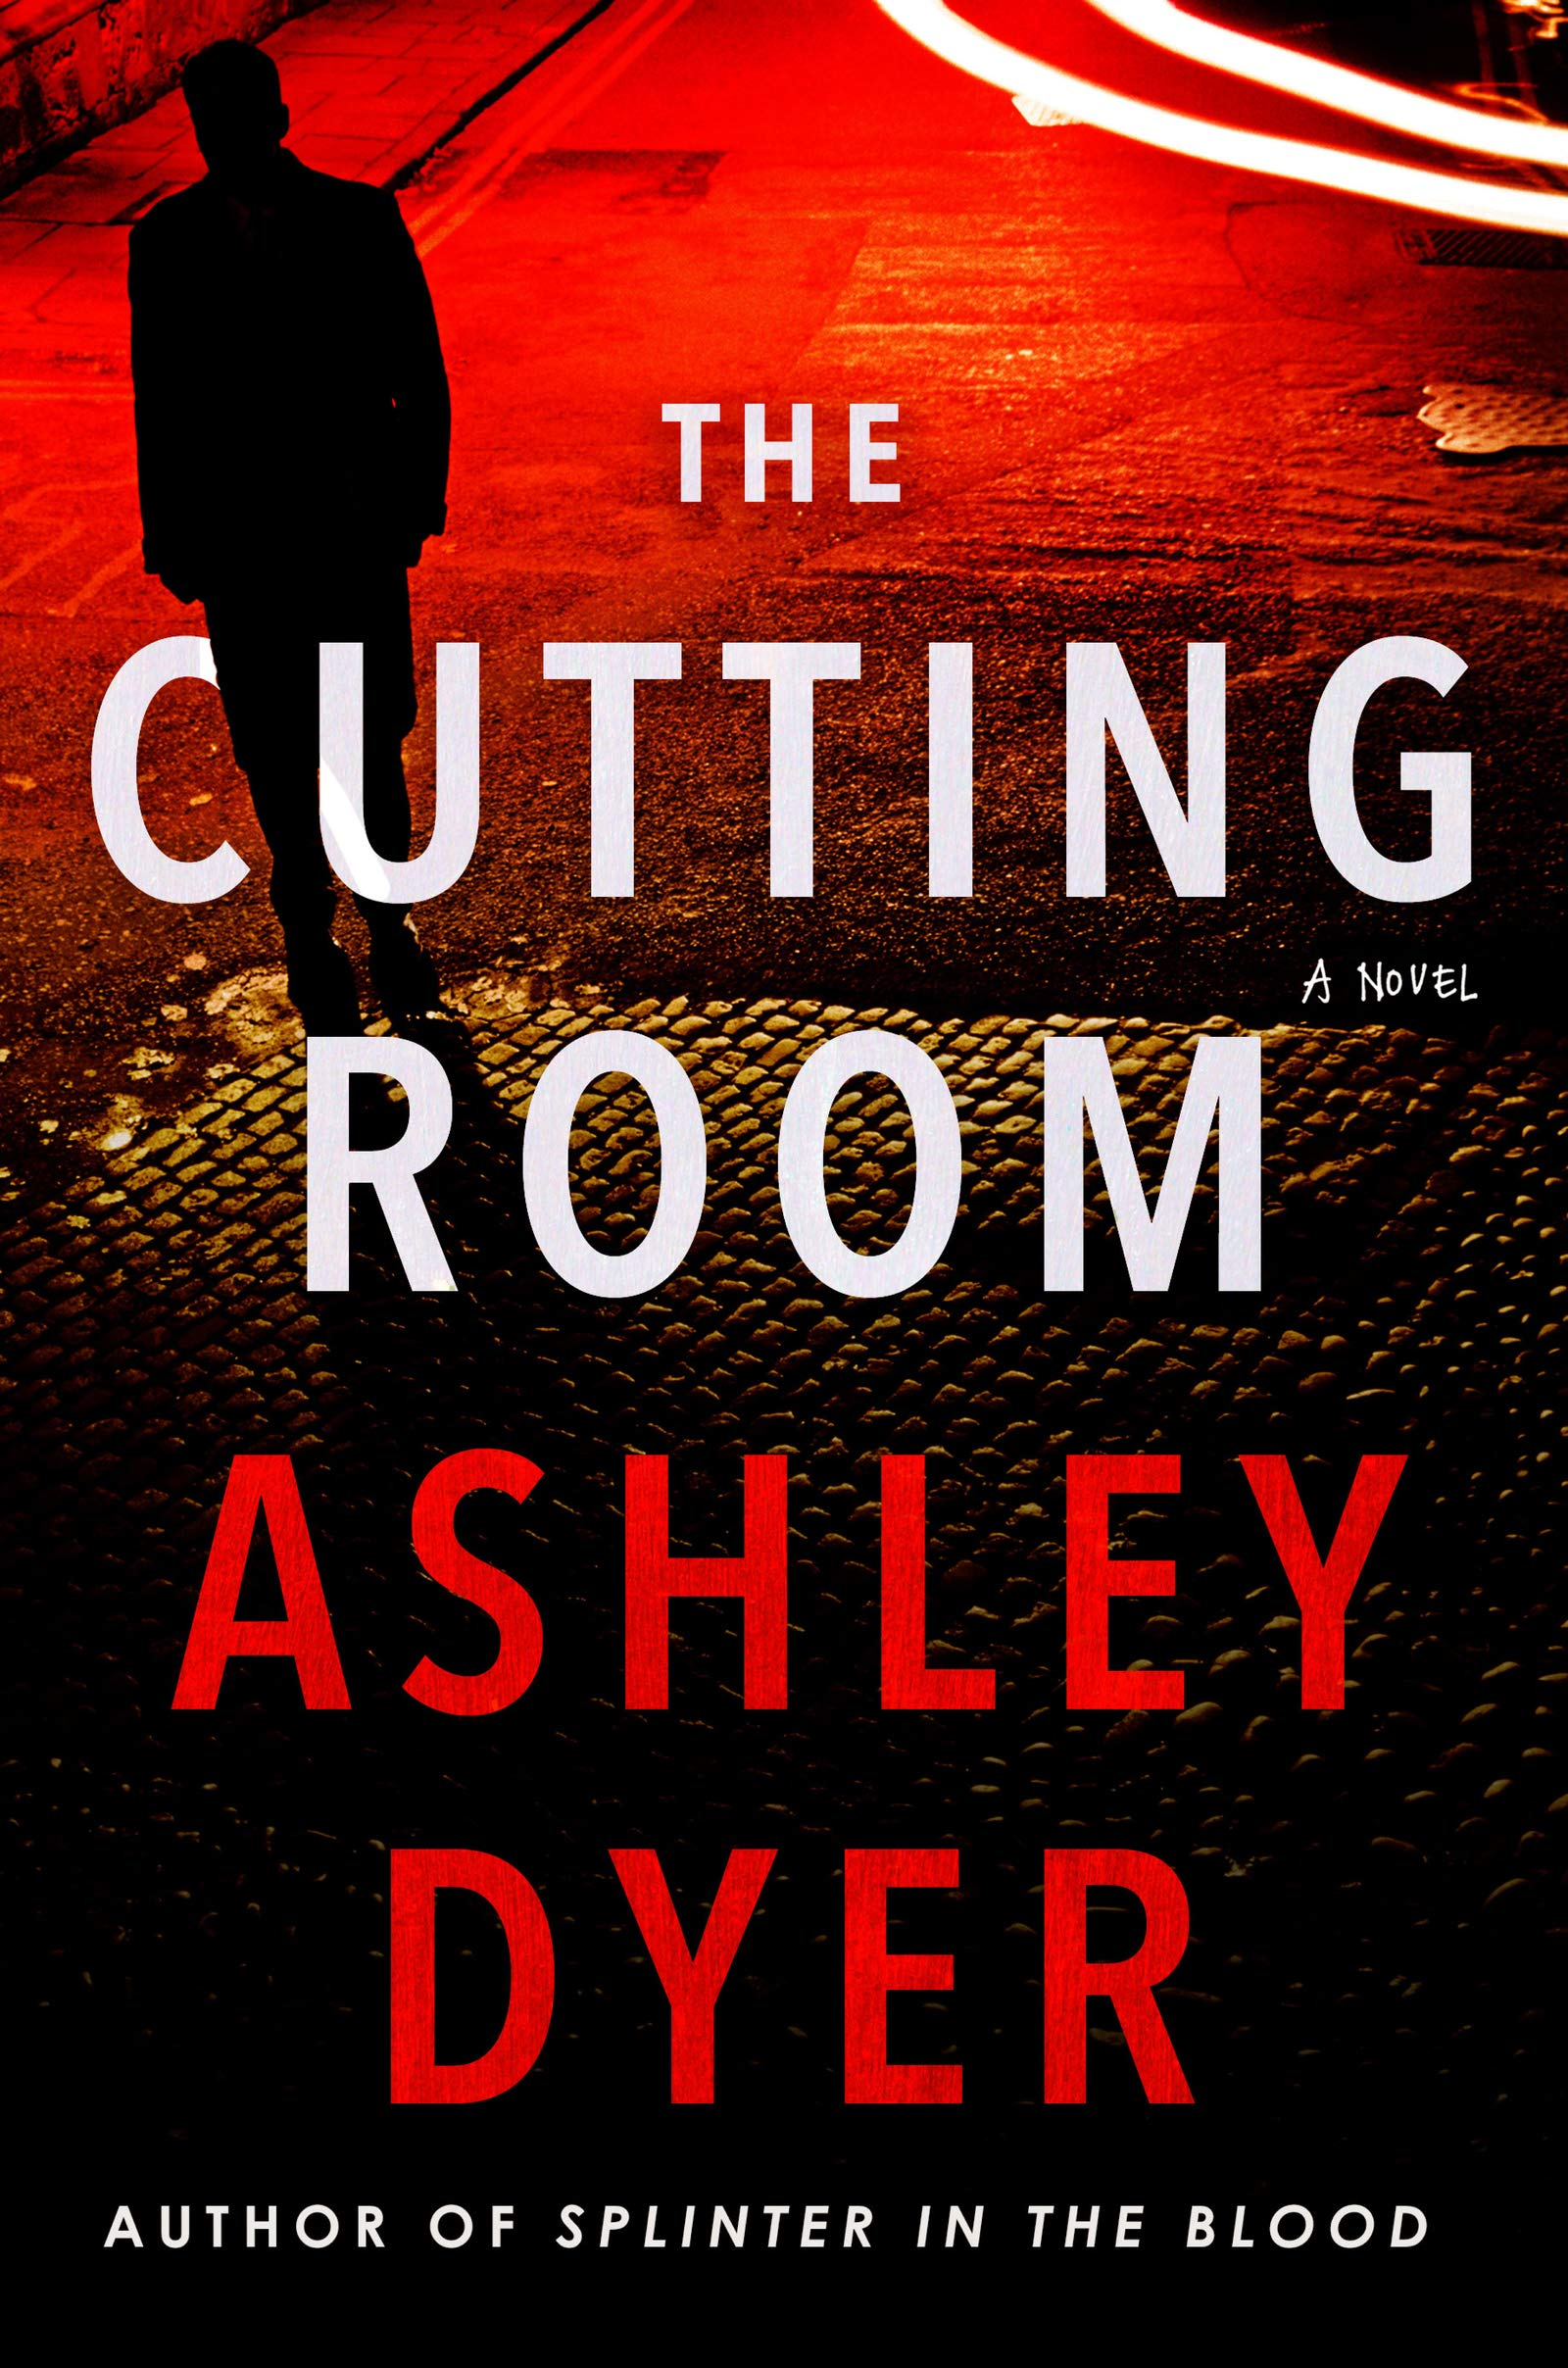 THE CUTTING ROOM by Ashley Dyer